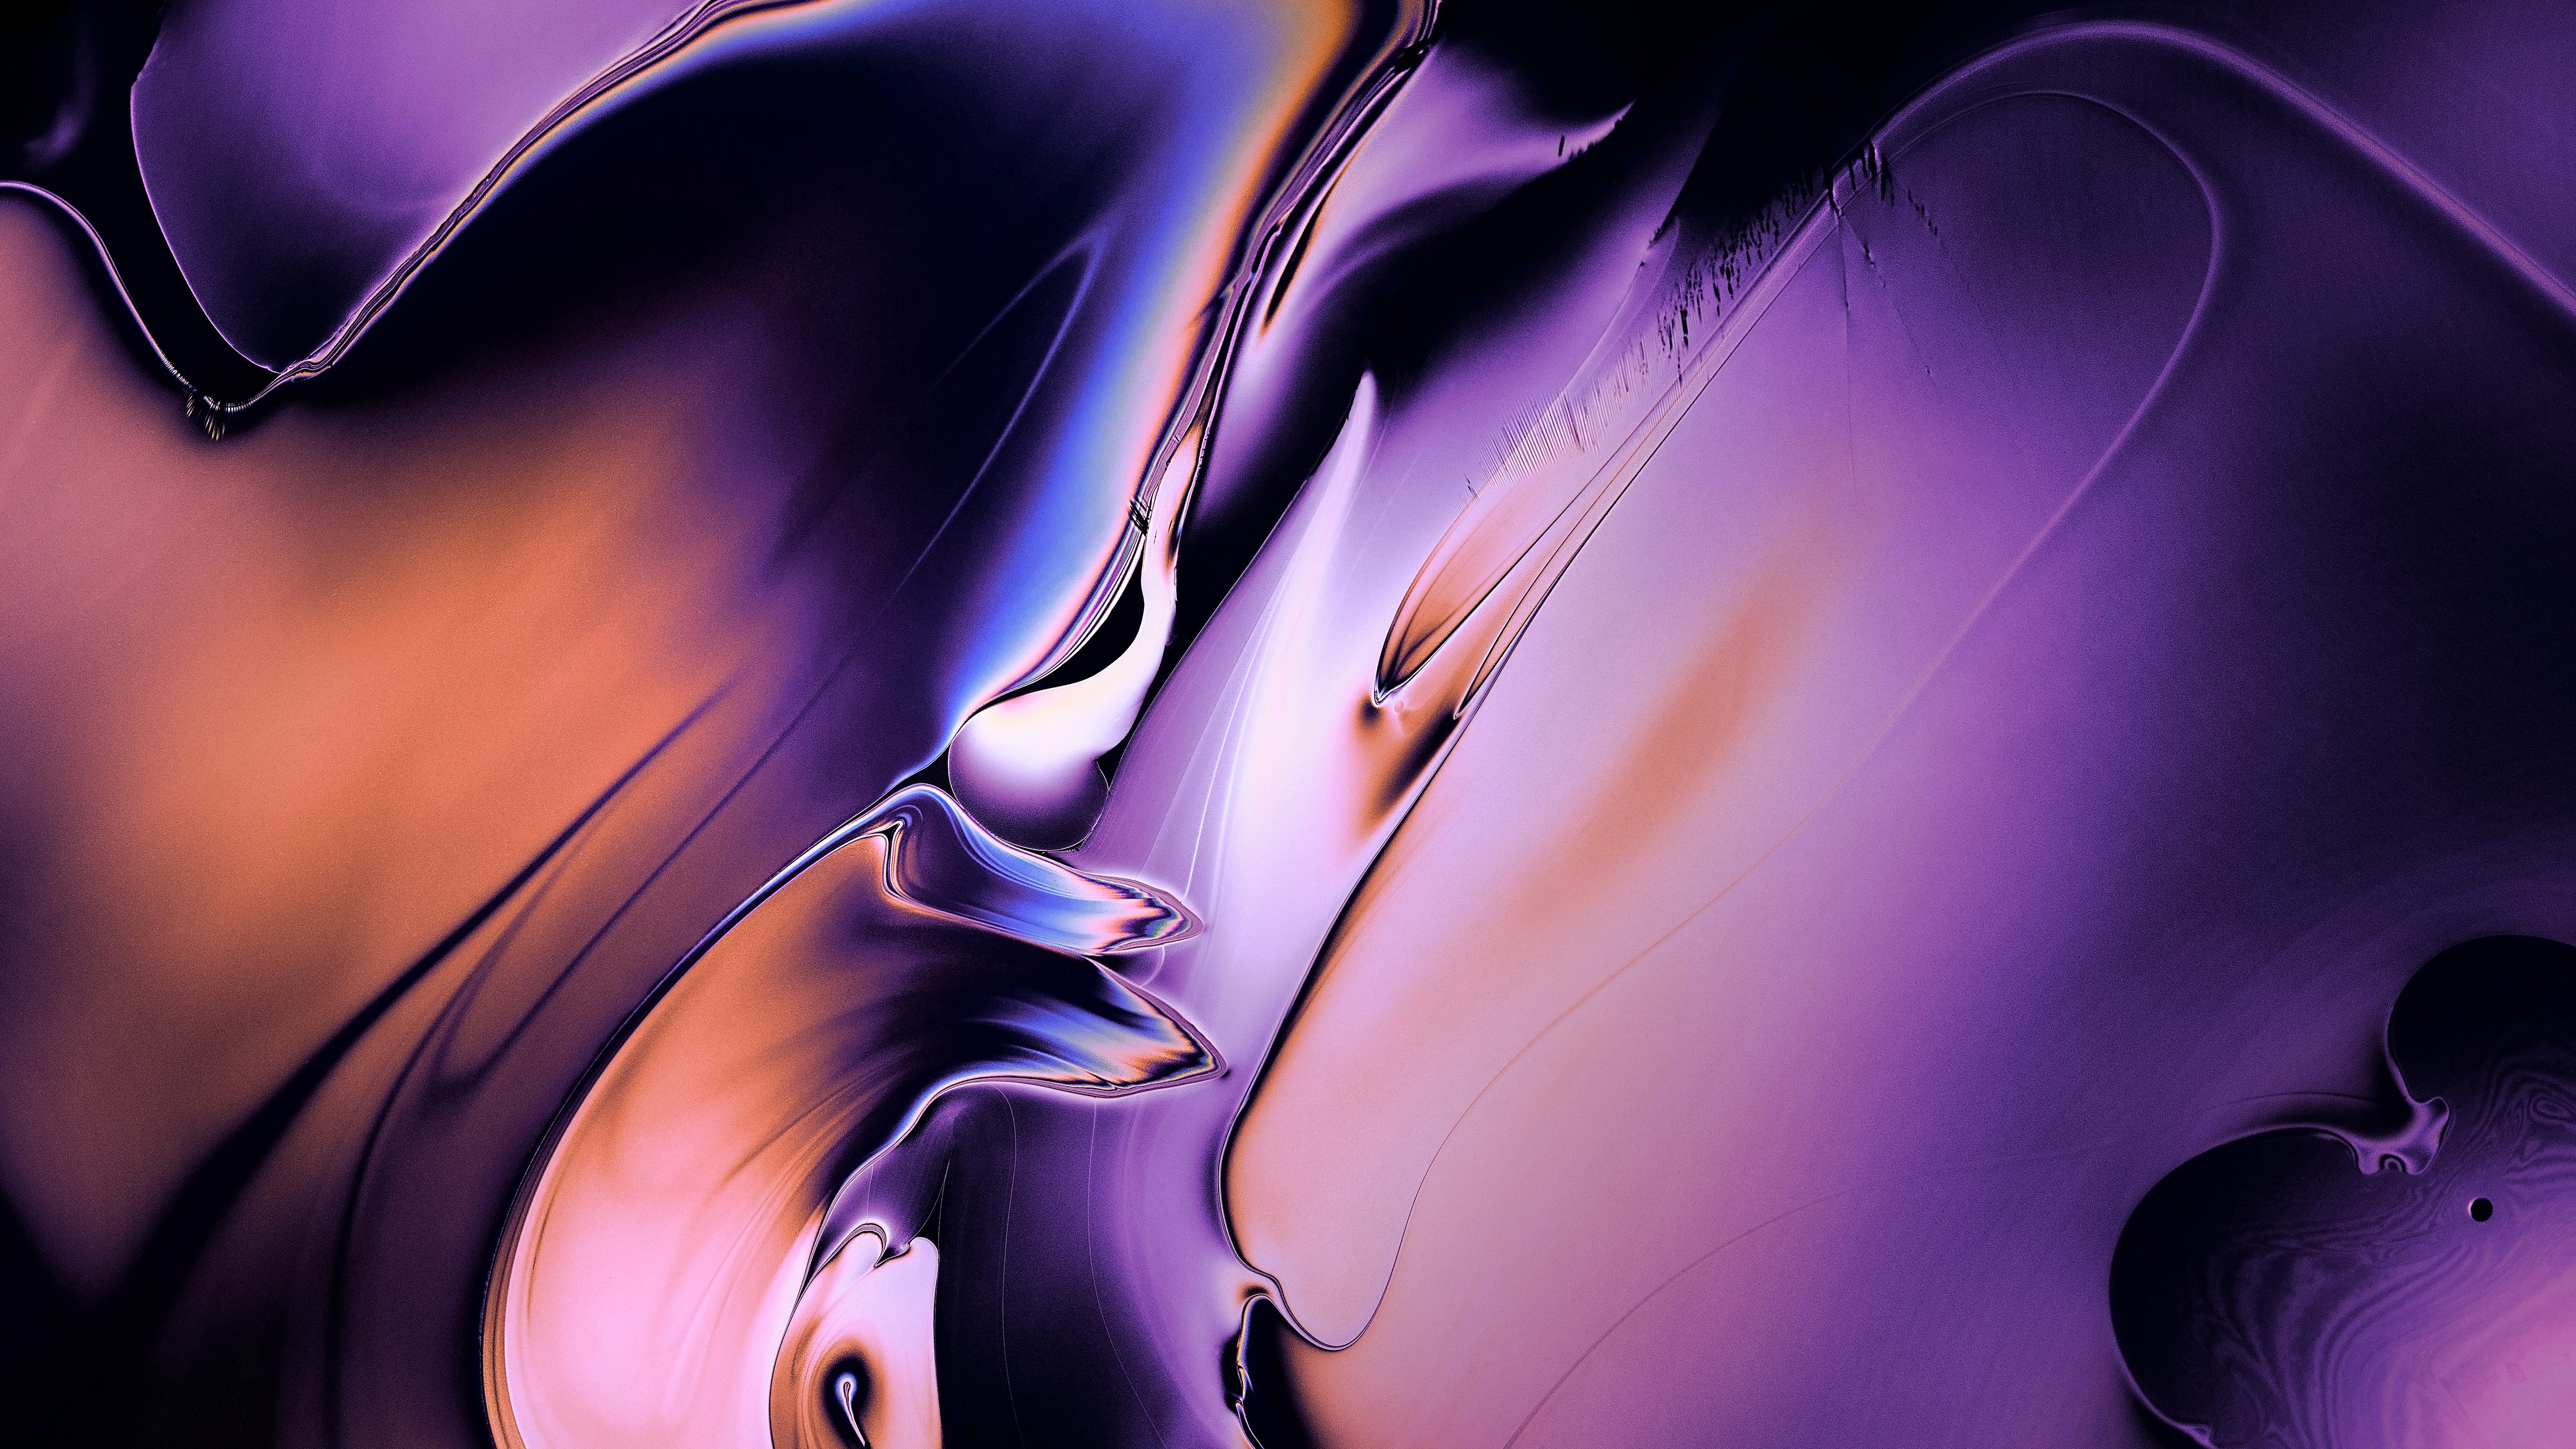 Best Dynamic Wallpaper App For Iphone X New Macos Mojave Wallpapers